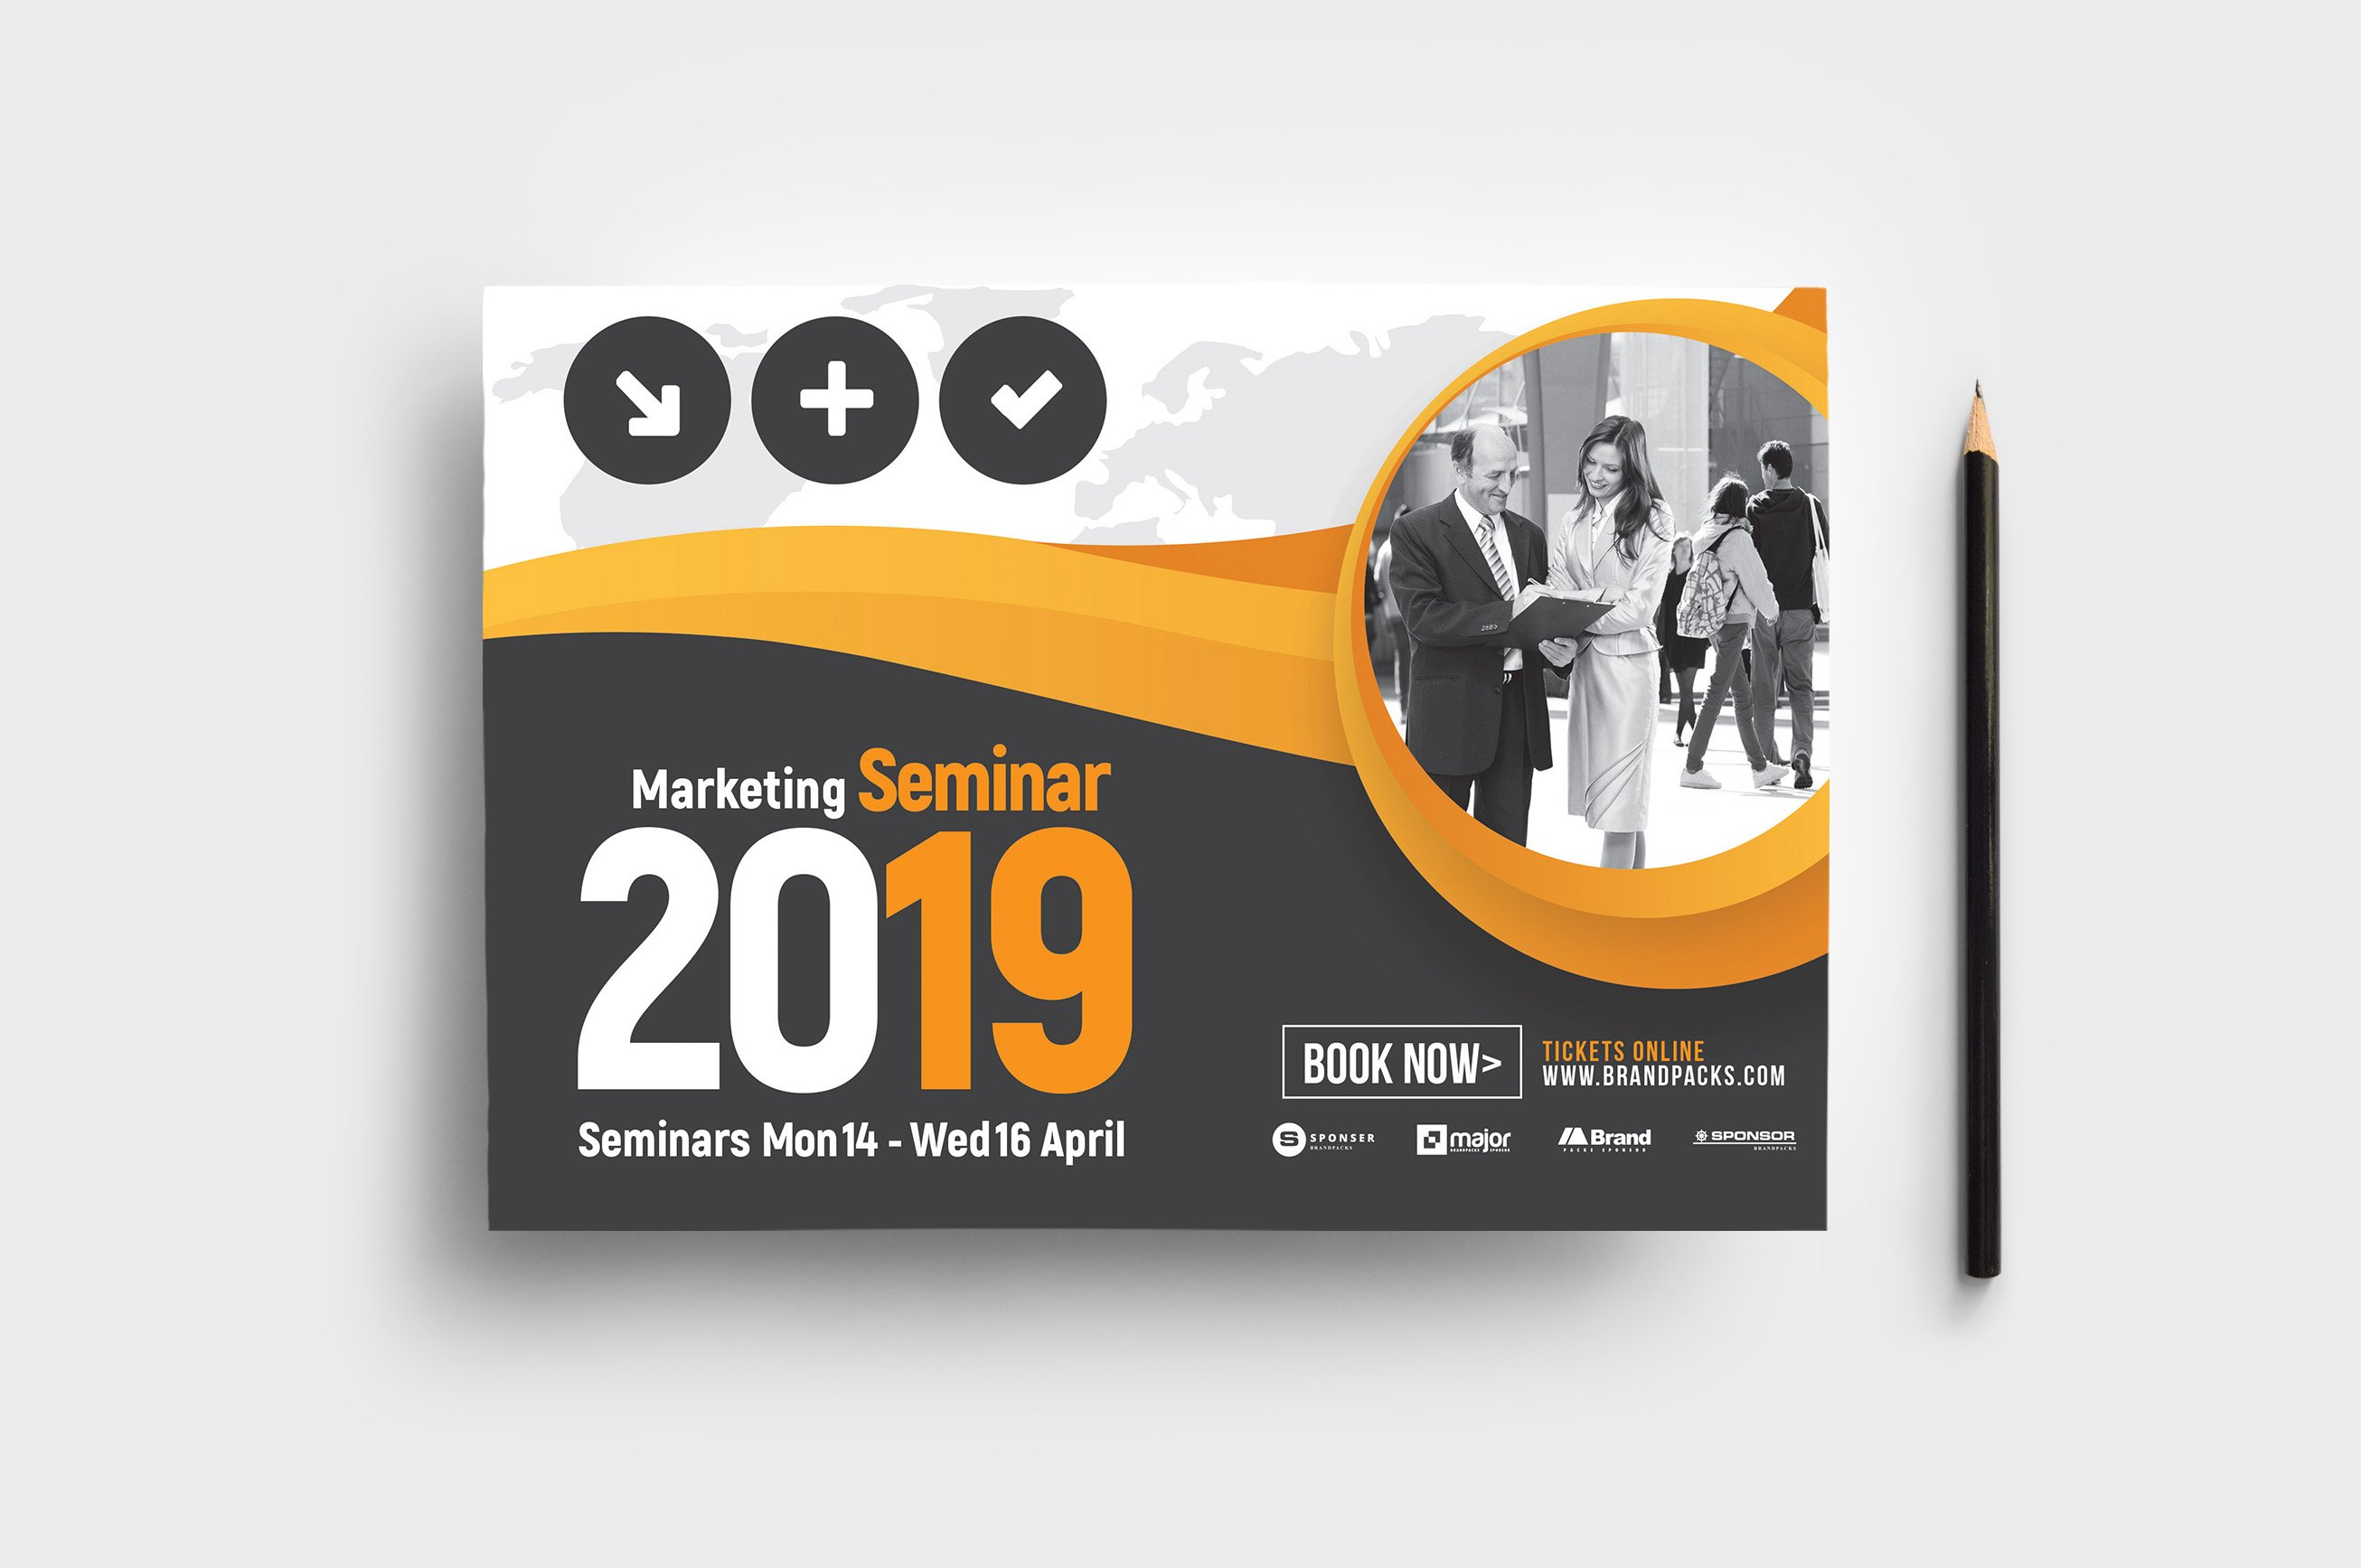 Marketing Seminar Flyer Template ~ Flyer Templates ~ Creative Market